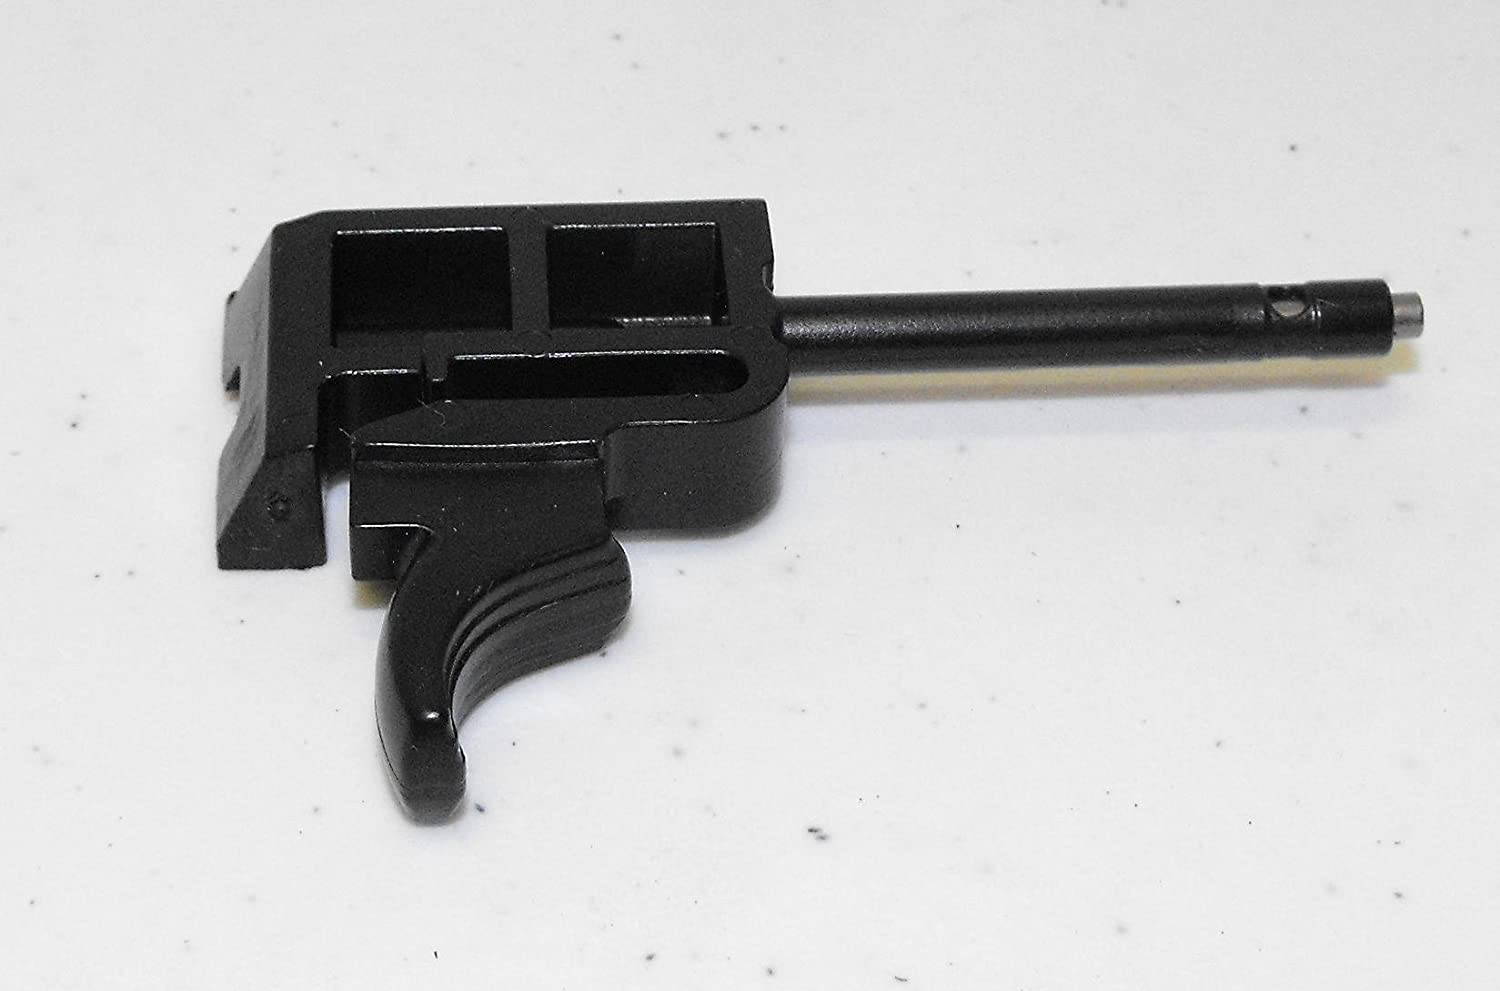 Crosman Pumpmaster 760 Valve Body Back Part BB Pellet Gun Air Rifle Crossman